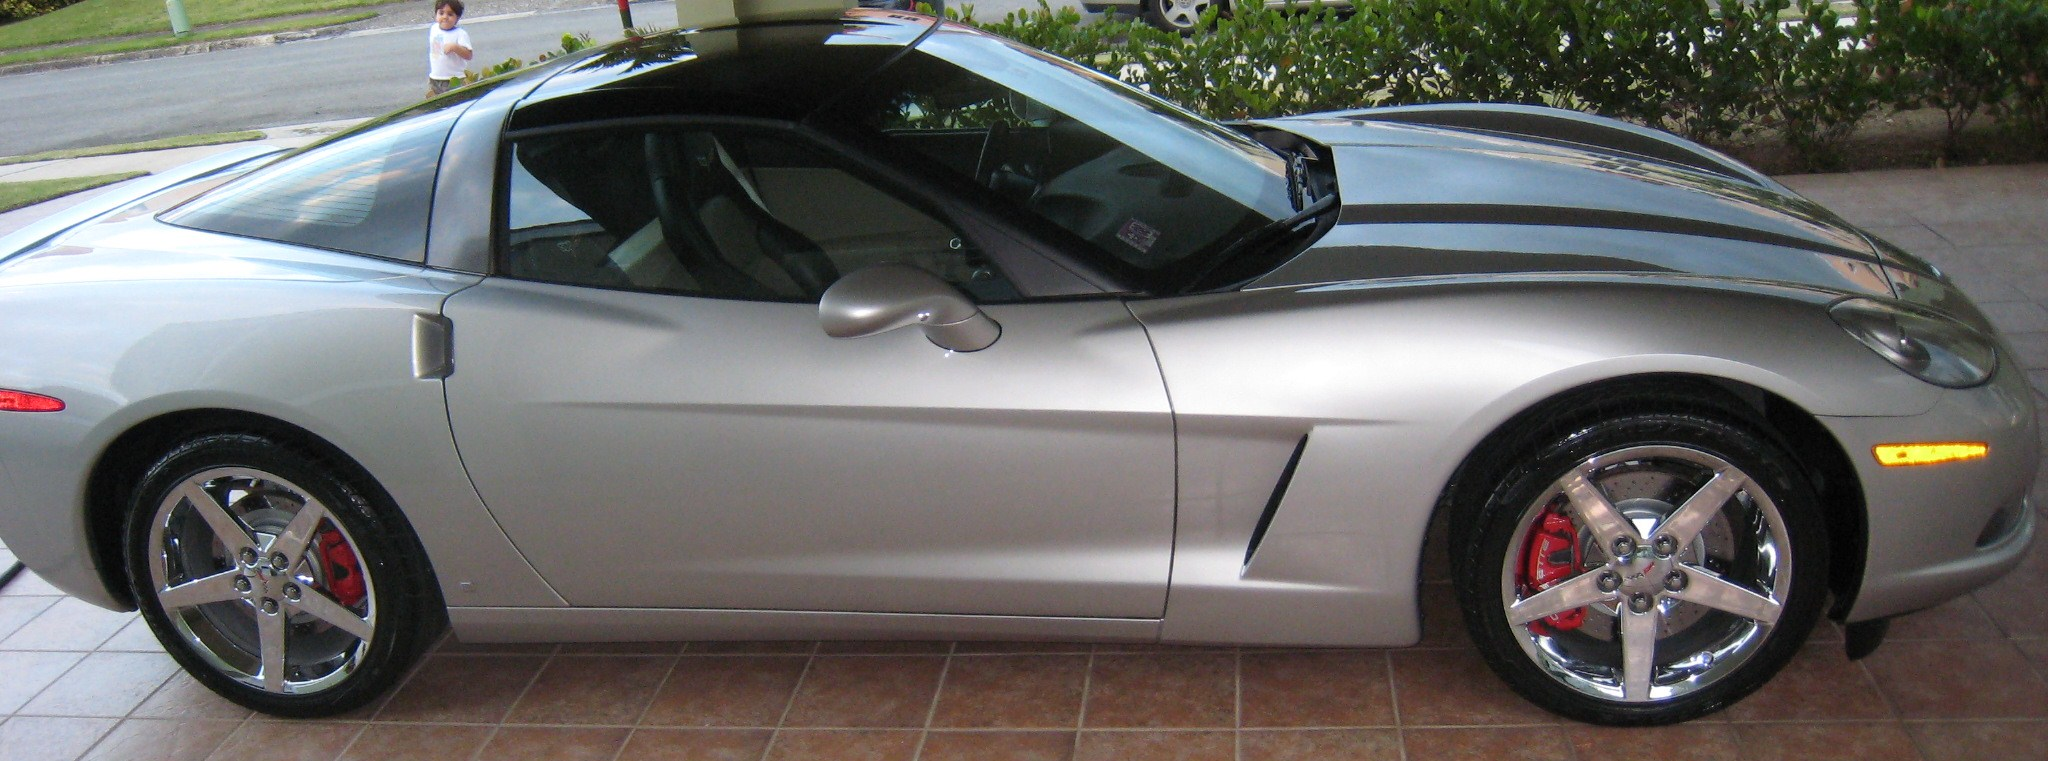 2008 Chevrolet Corvette ls3 automatic 6speed